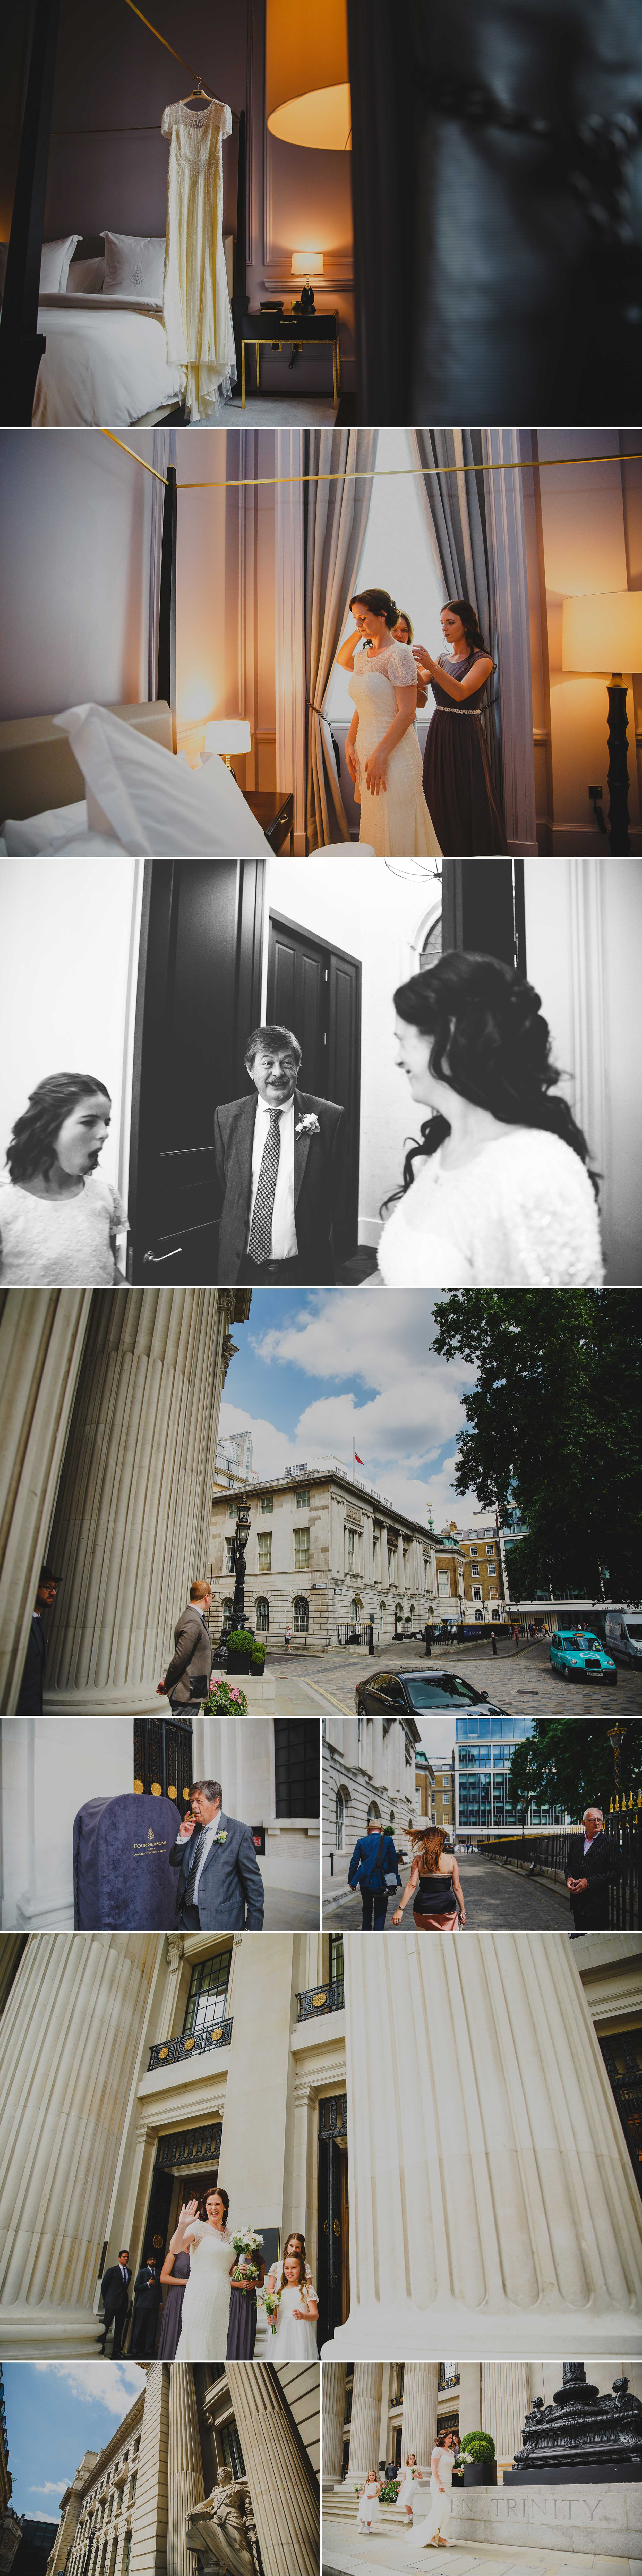 Trinity House London Wedding Photography 3 2